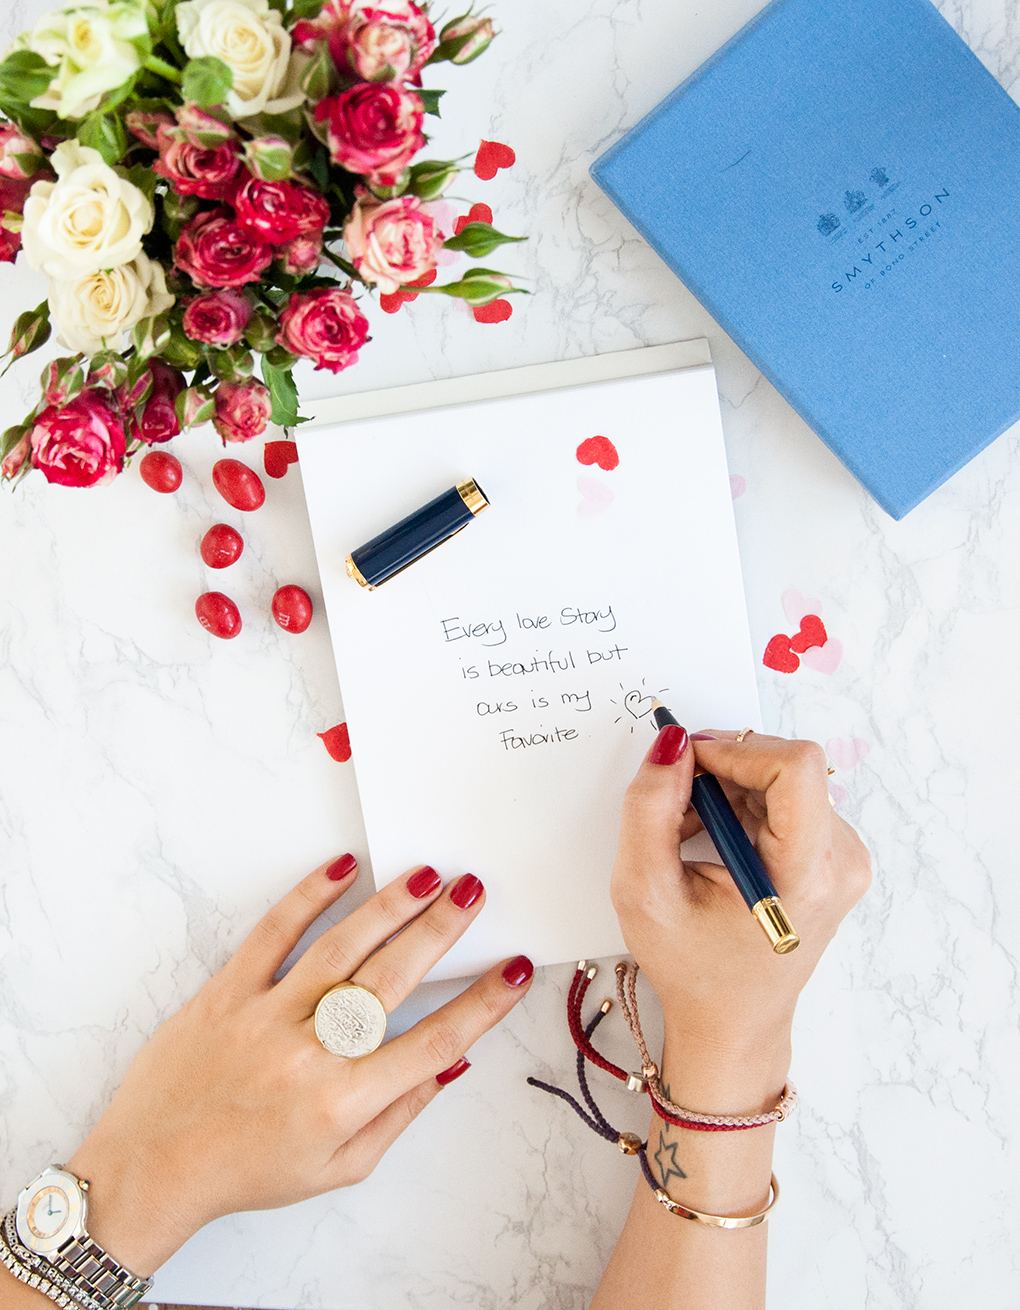 Lyla_Love_Fashion_Smythson_Letter_Valentines_Day_6102